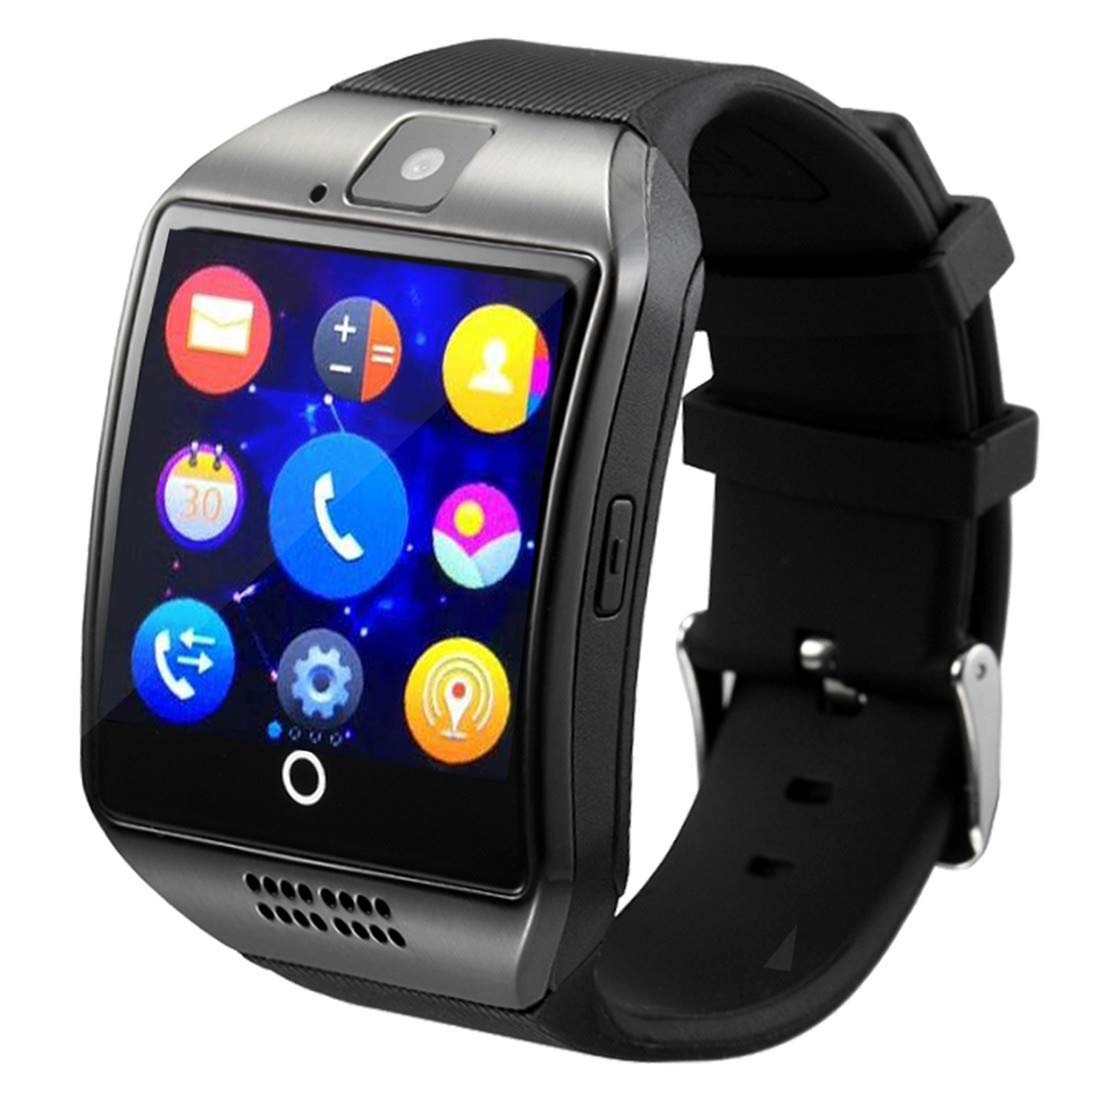 Smart Watch With Camara Touch Screen,OURSPOP Bluetooth SmartWatch, Smart Wrist Watch,Unlocked Watch Cell Phone With 2G GSM Camera Call reminder for Android iPhone Men Women Boys Girls